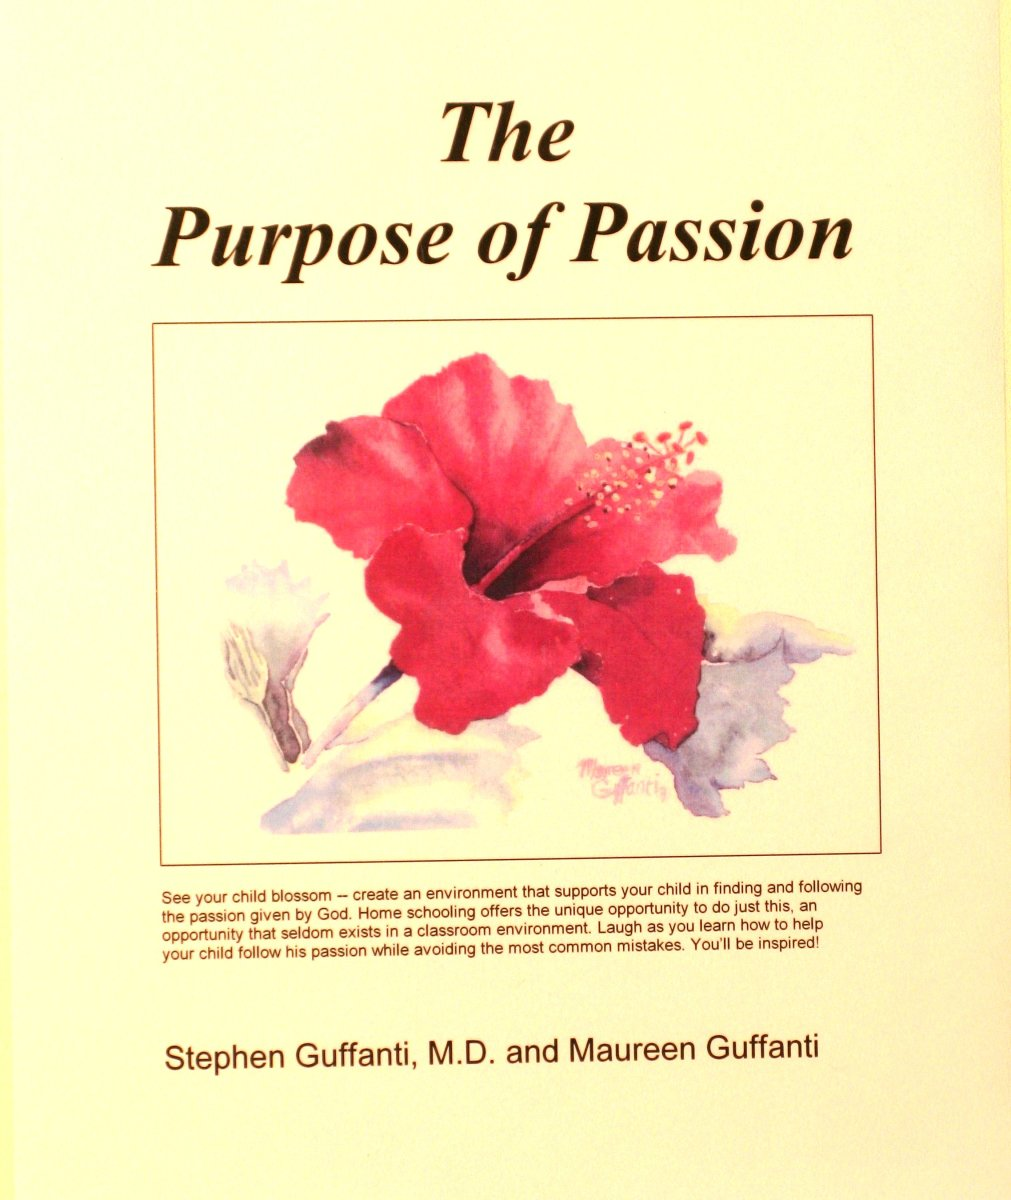 The Purpose of Passion